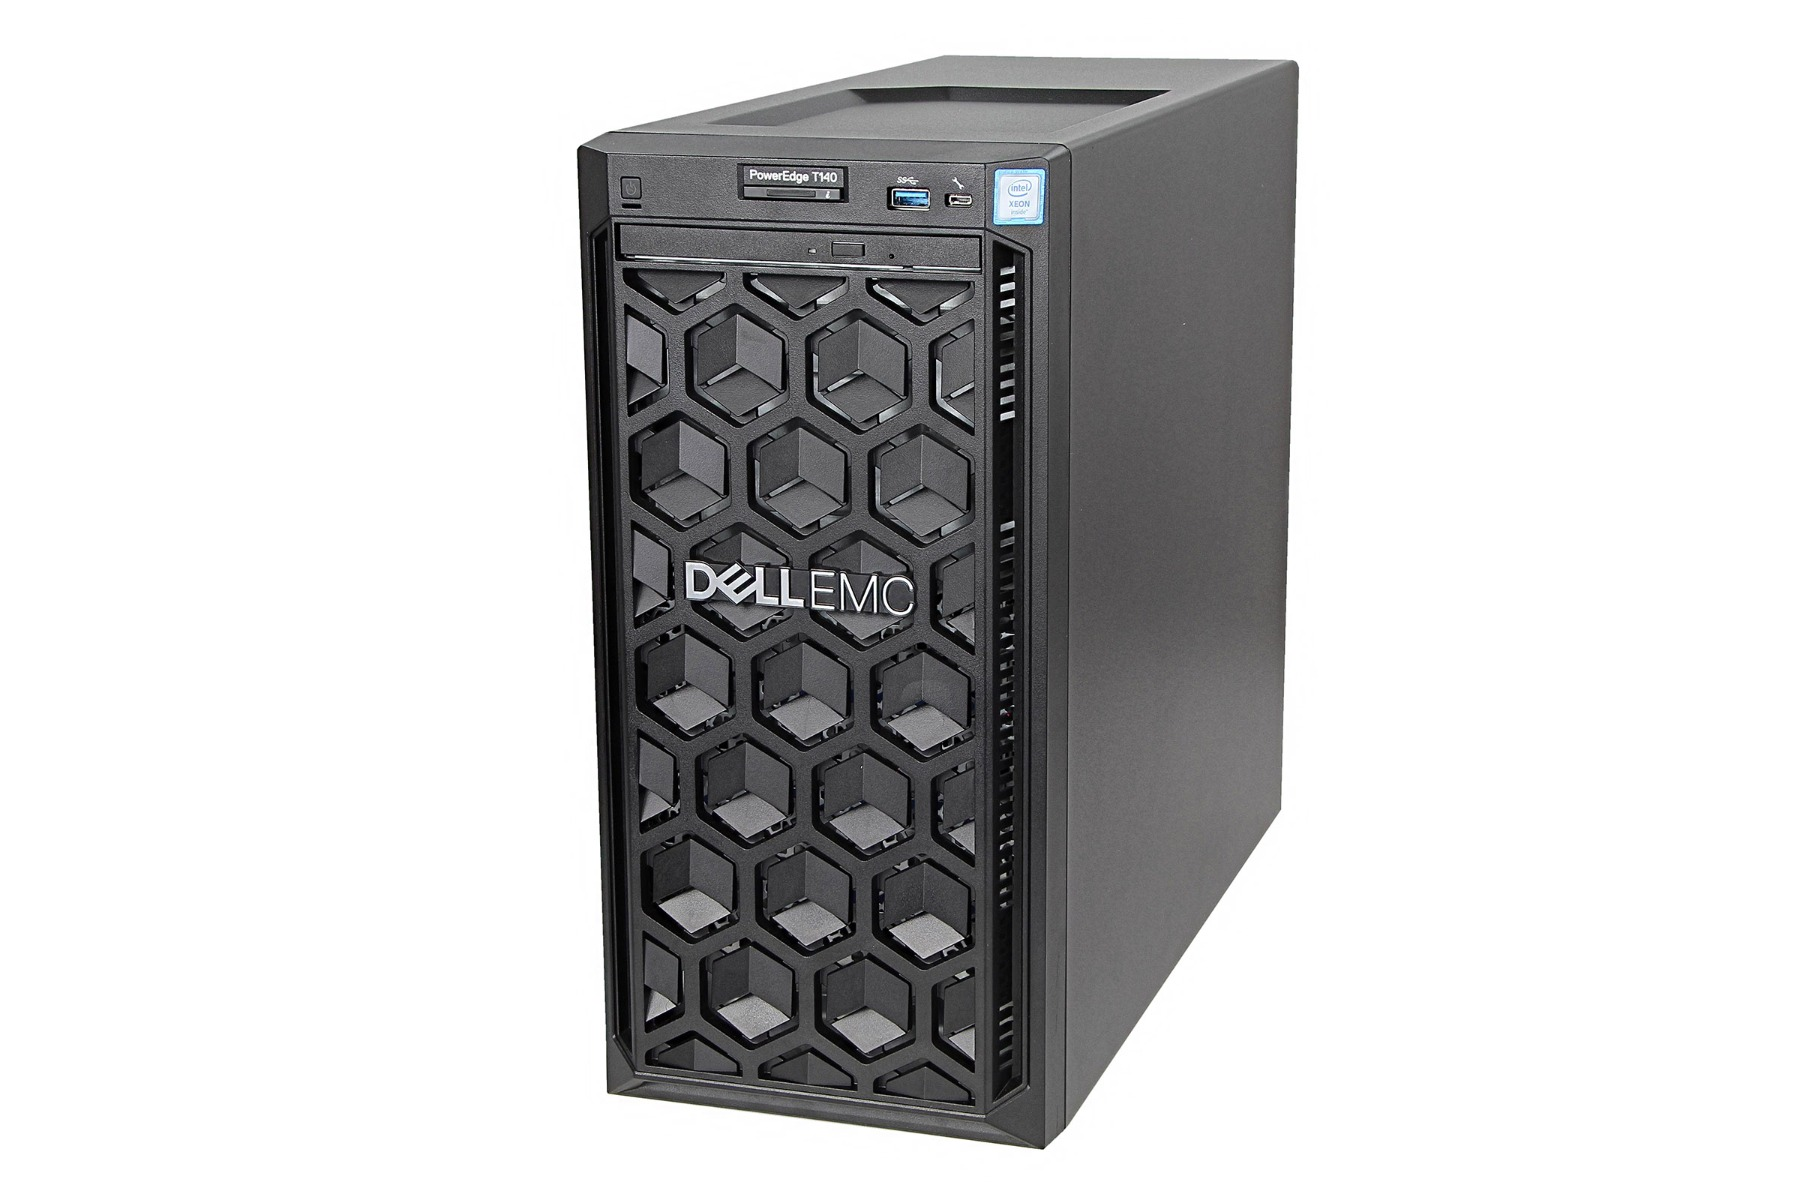 Configure your own Dell PowerEdge T140